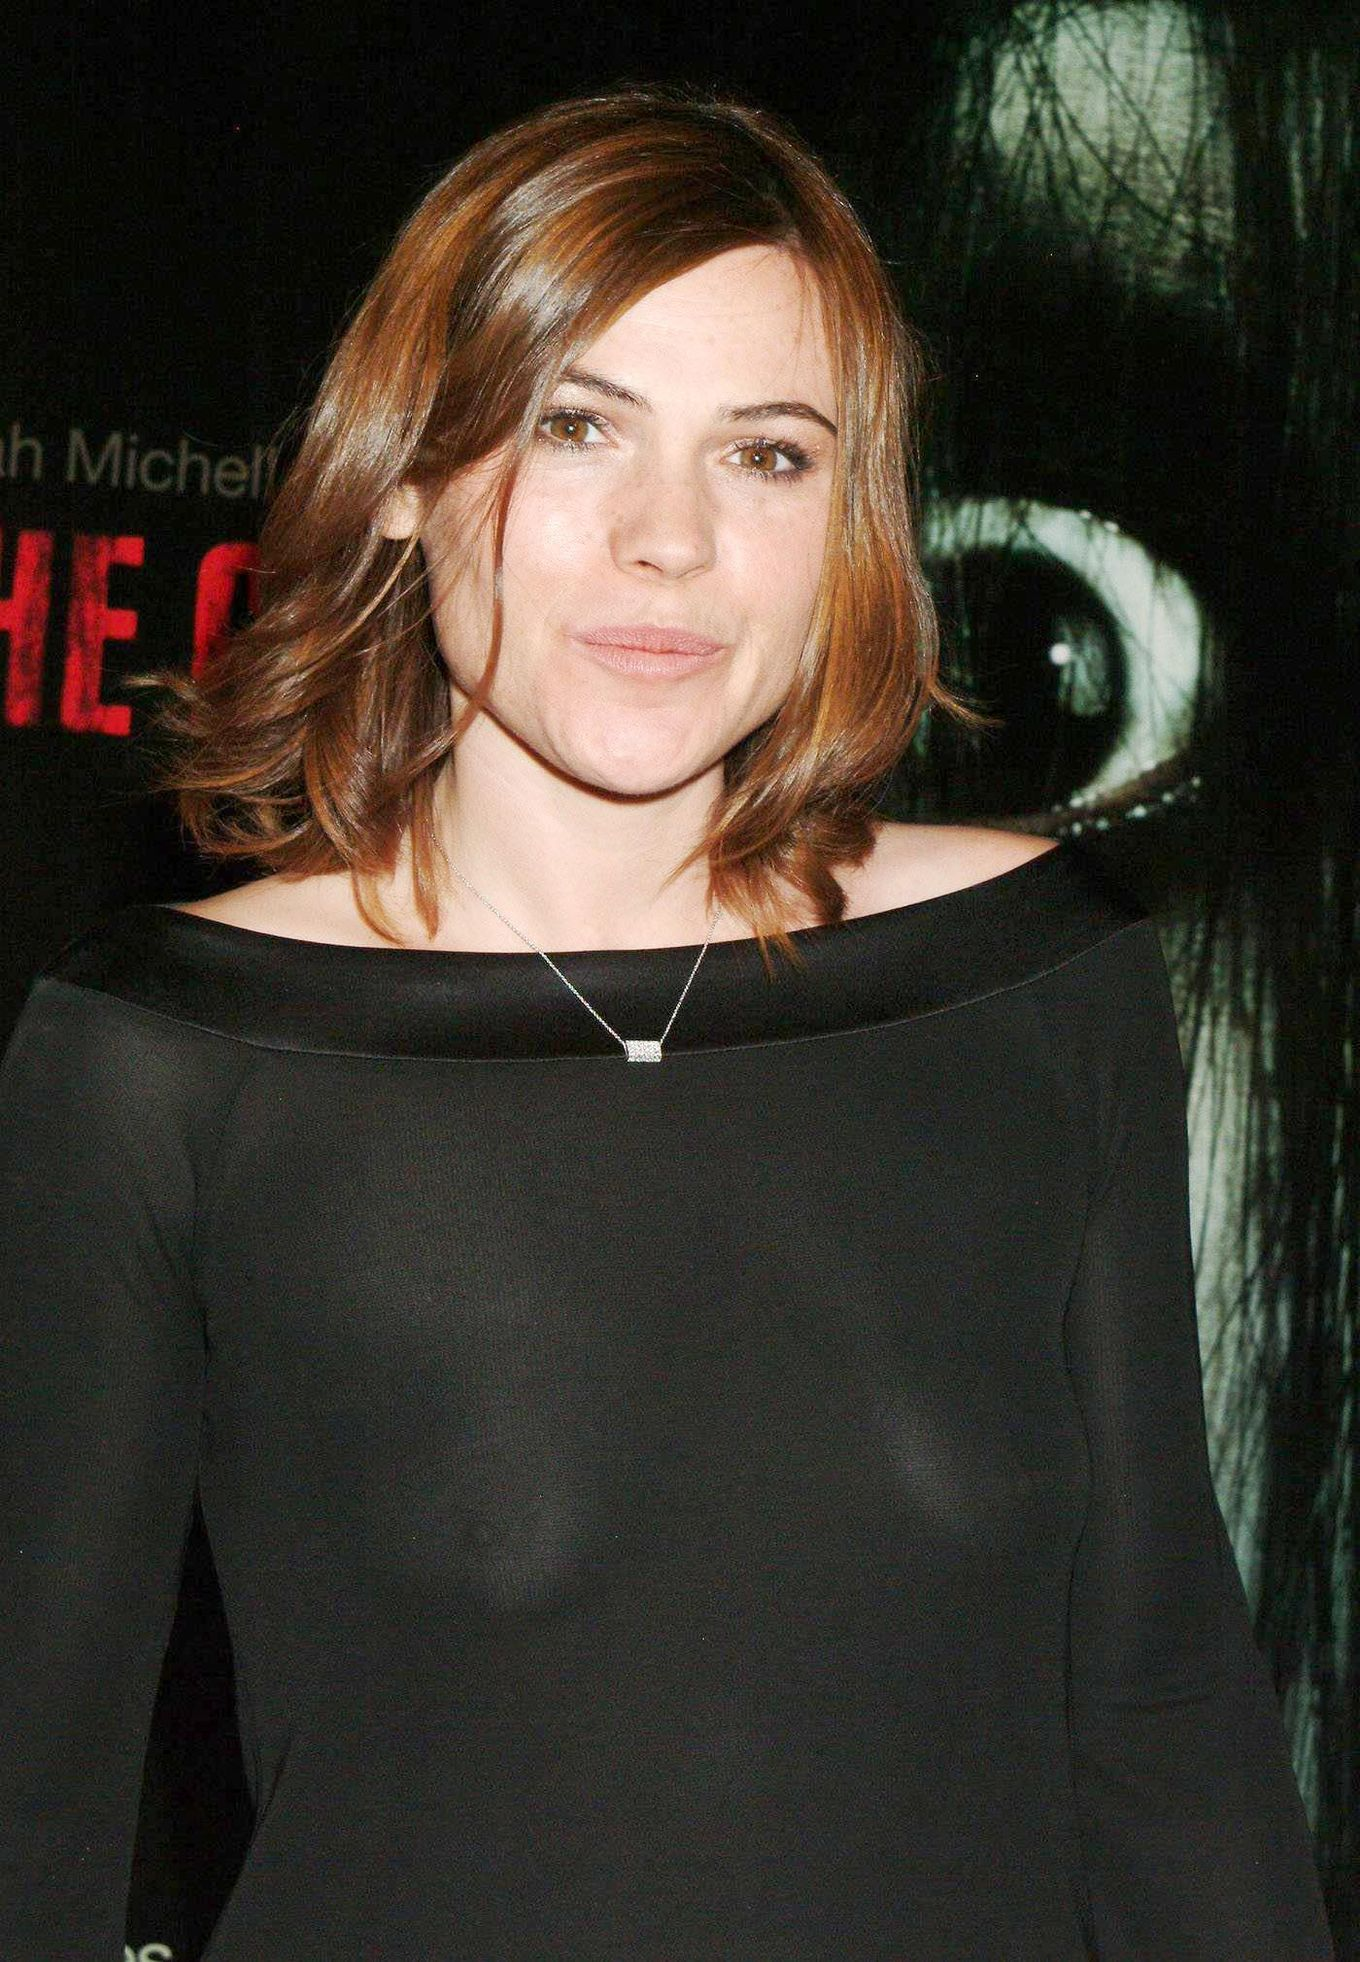 Porno Clea DuVall nudes (36 fotos) Boobs, Snapchat, swimsuit